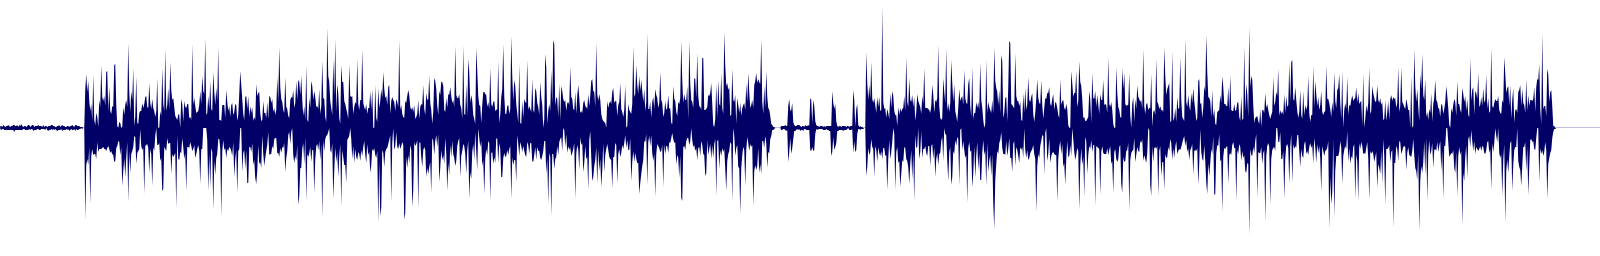 waveform of track #145728